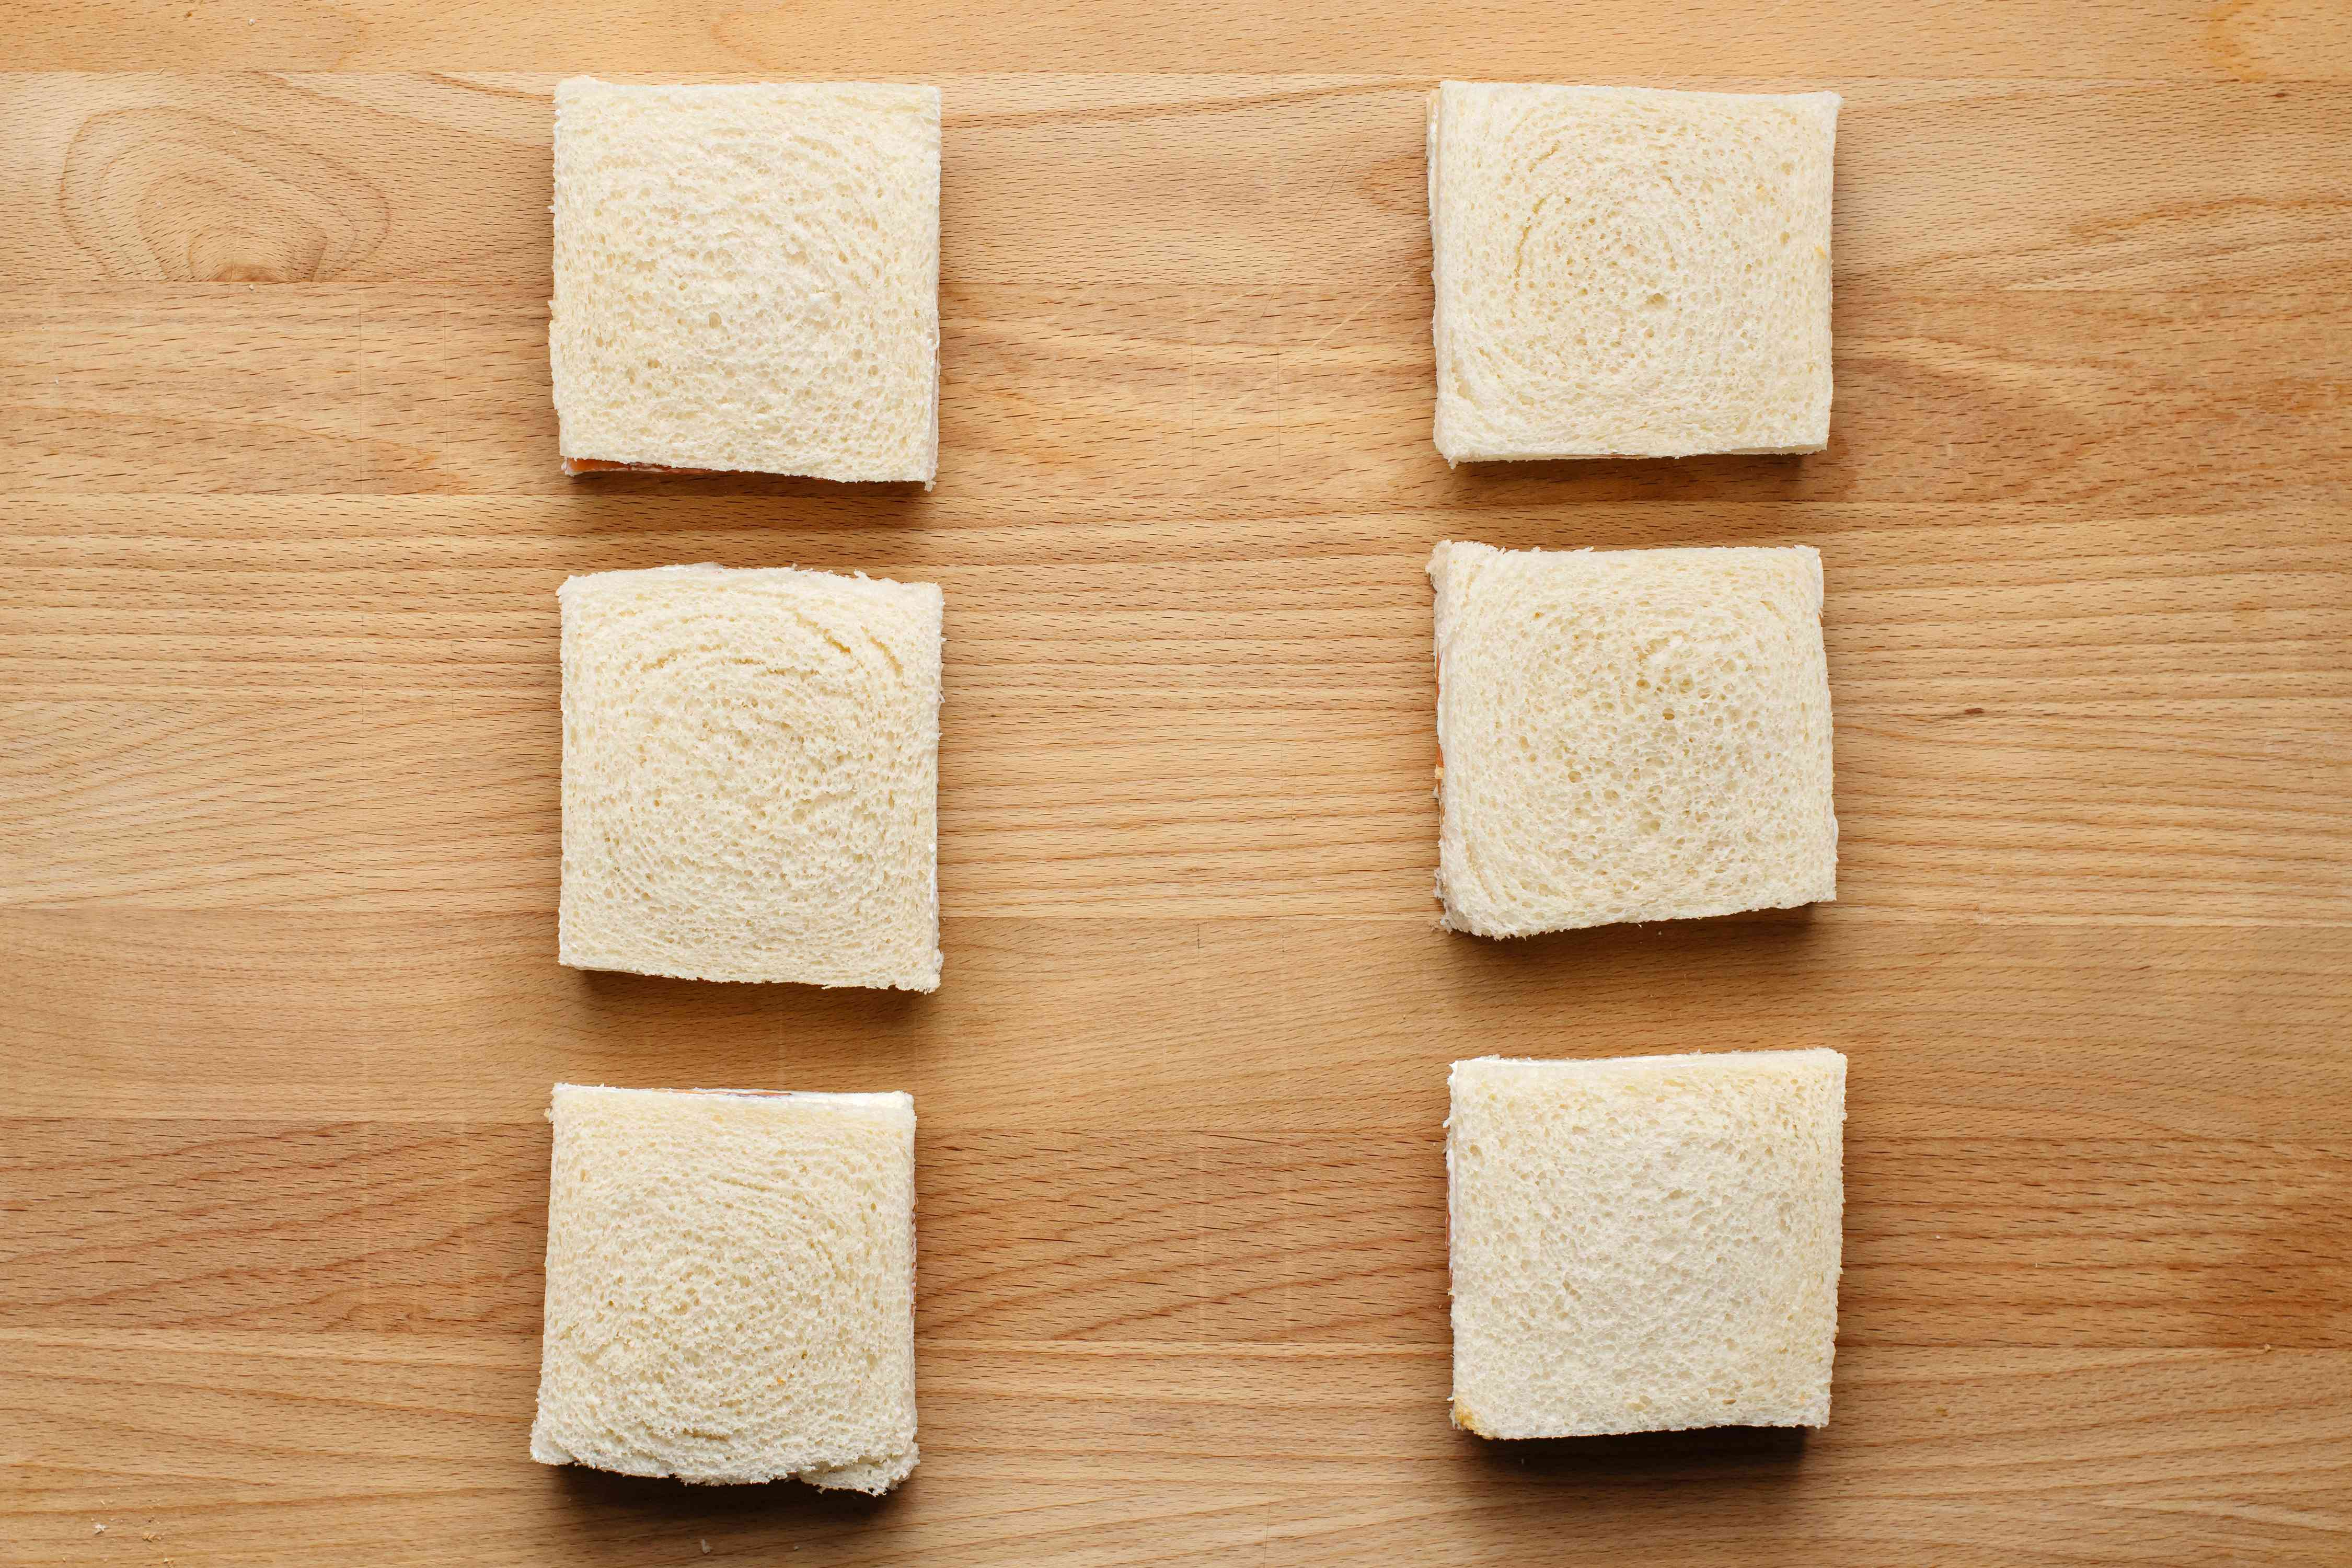 Put the slices together and cut off the crusts